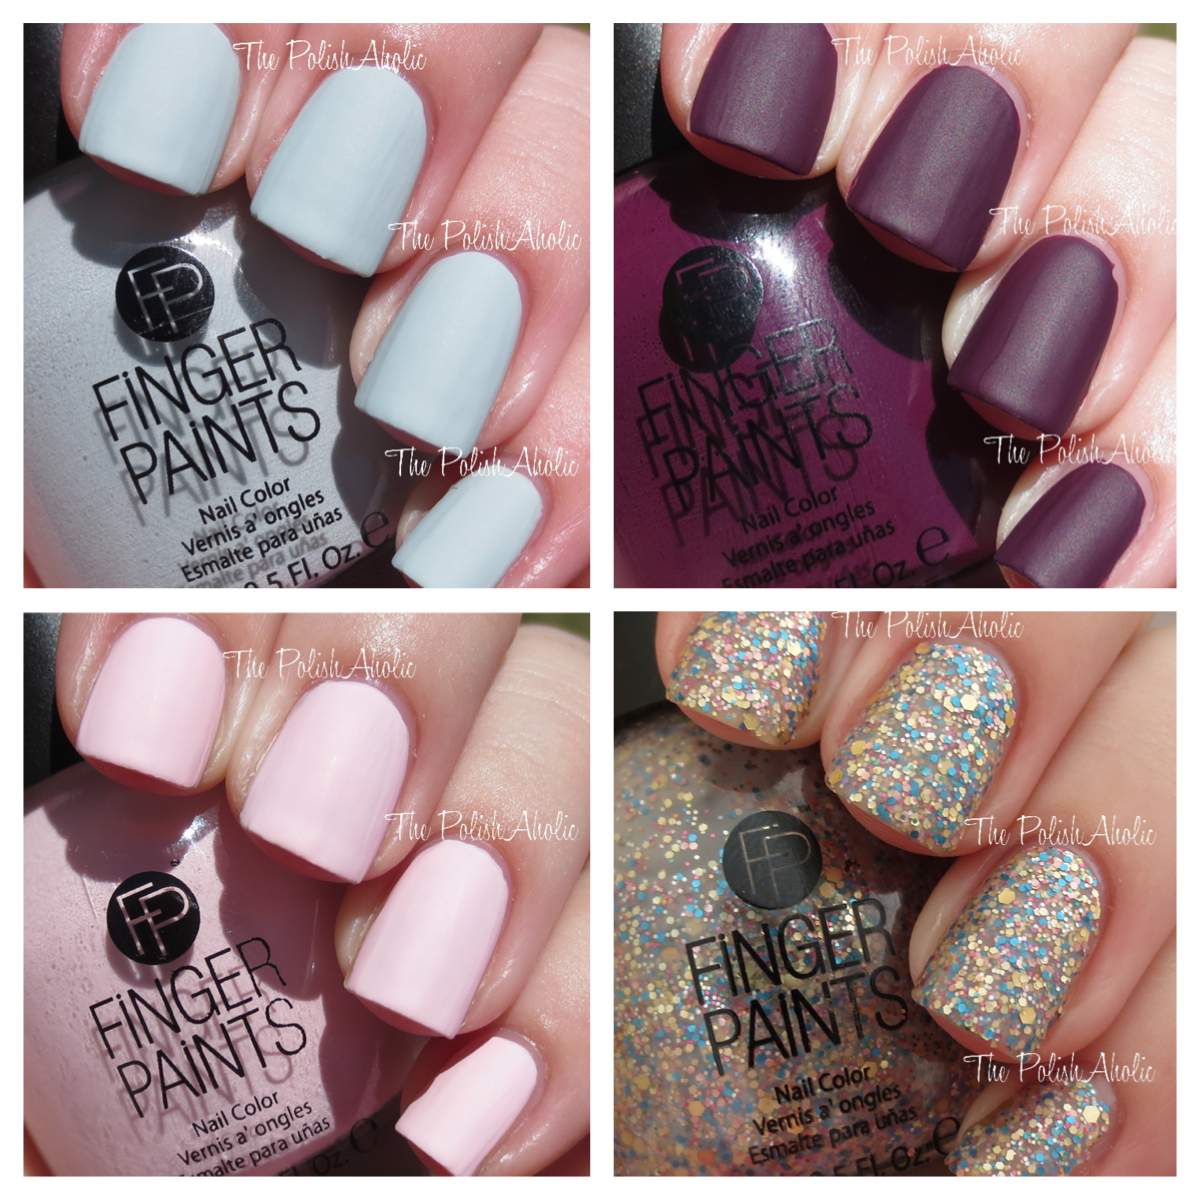 The PolishAholic: Finger Paints Film Noir Collection Swatches & Review